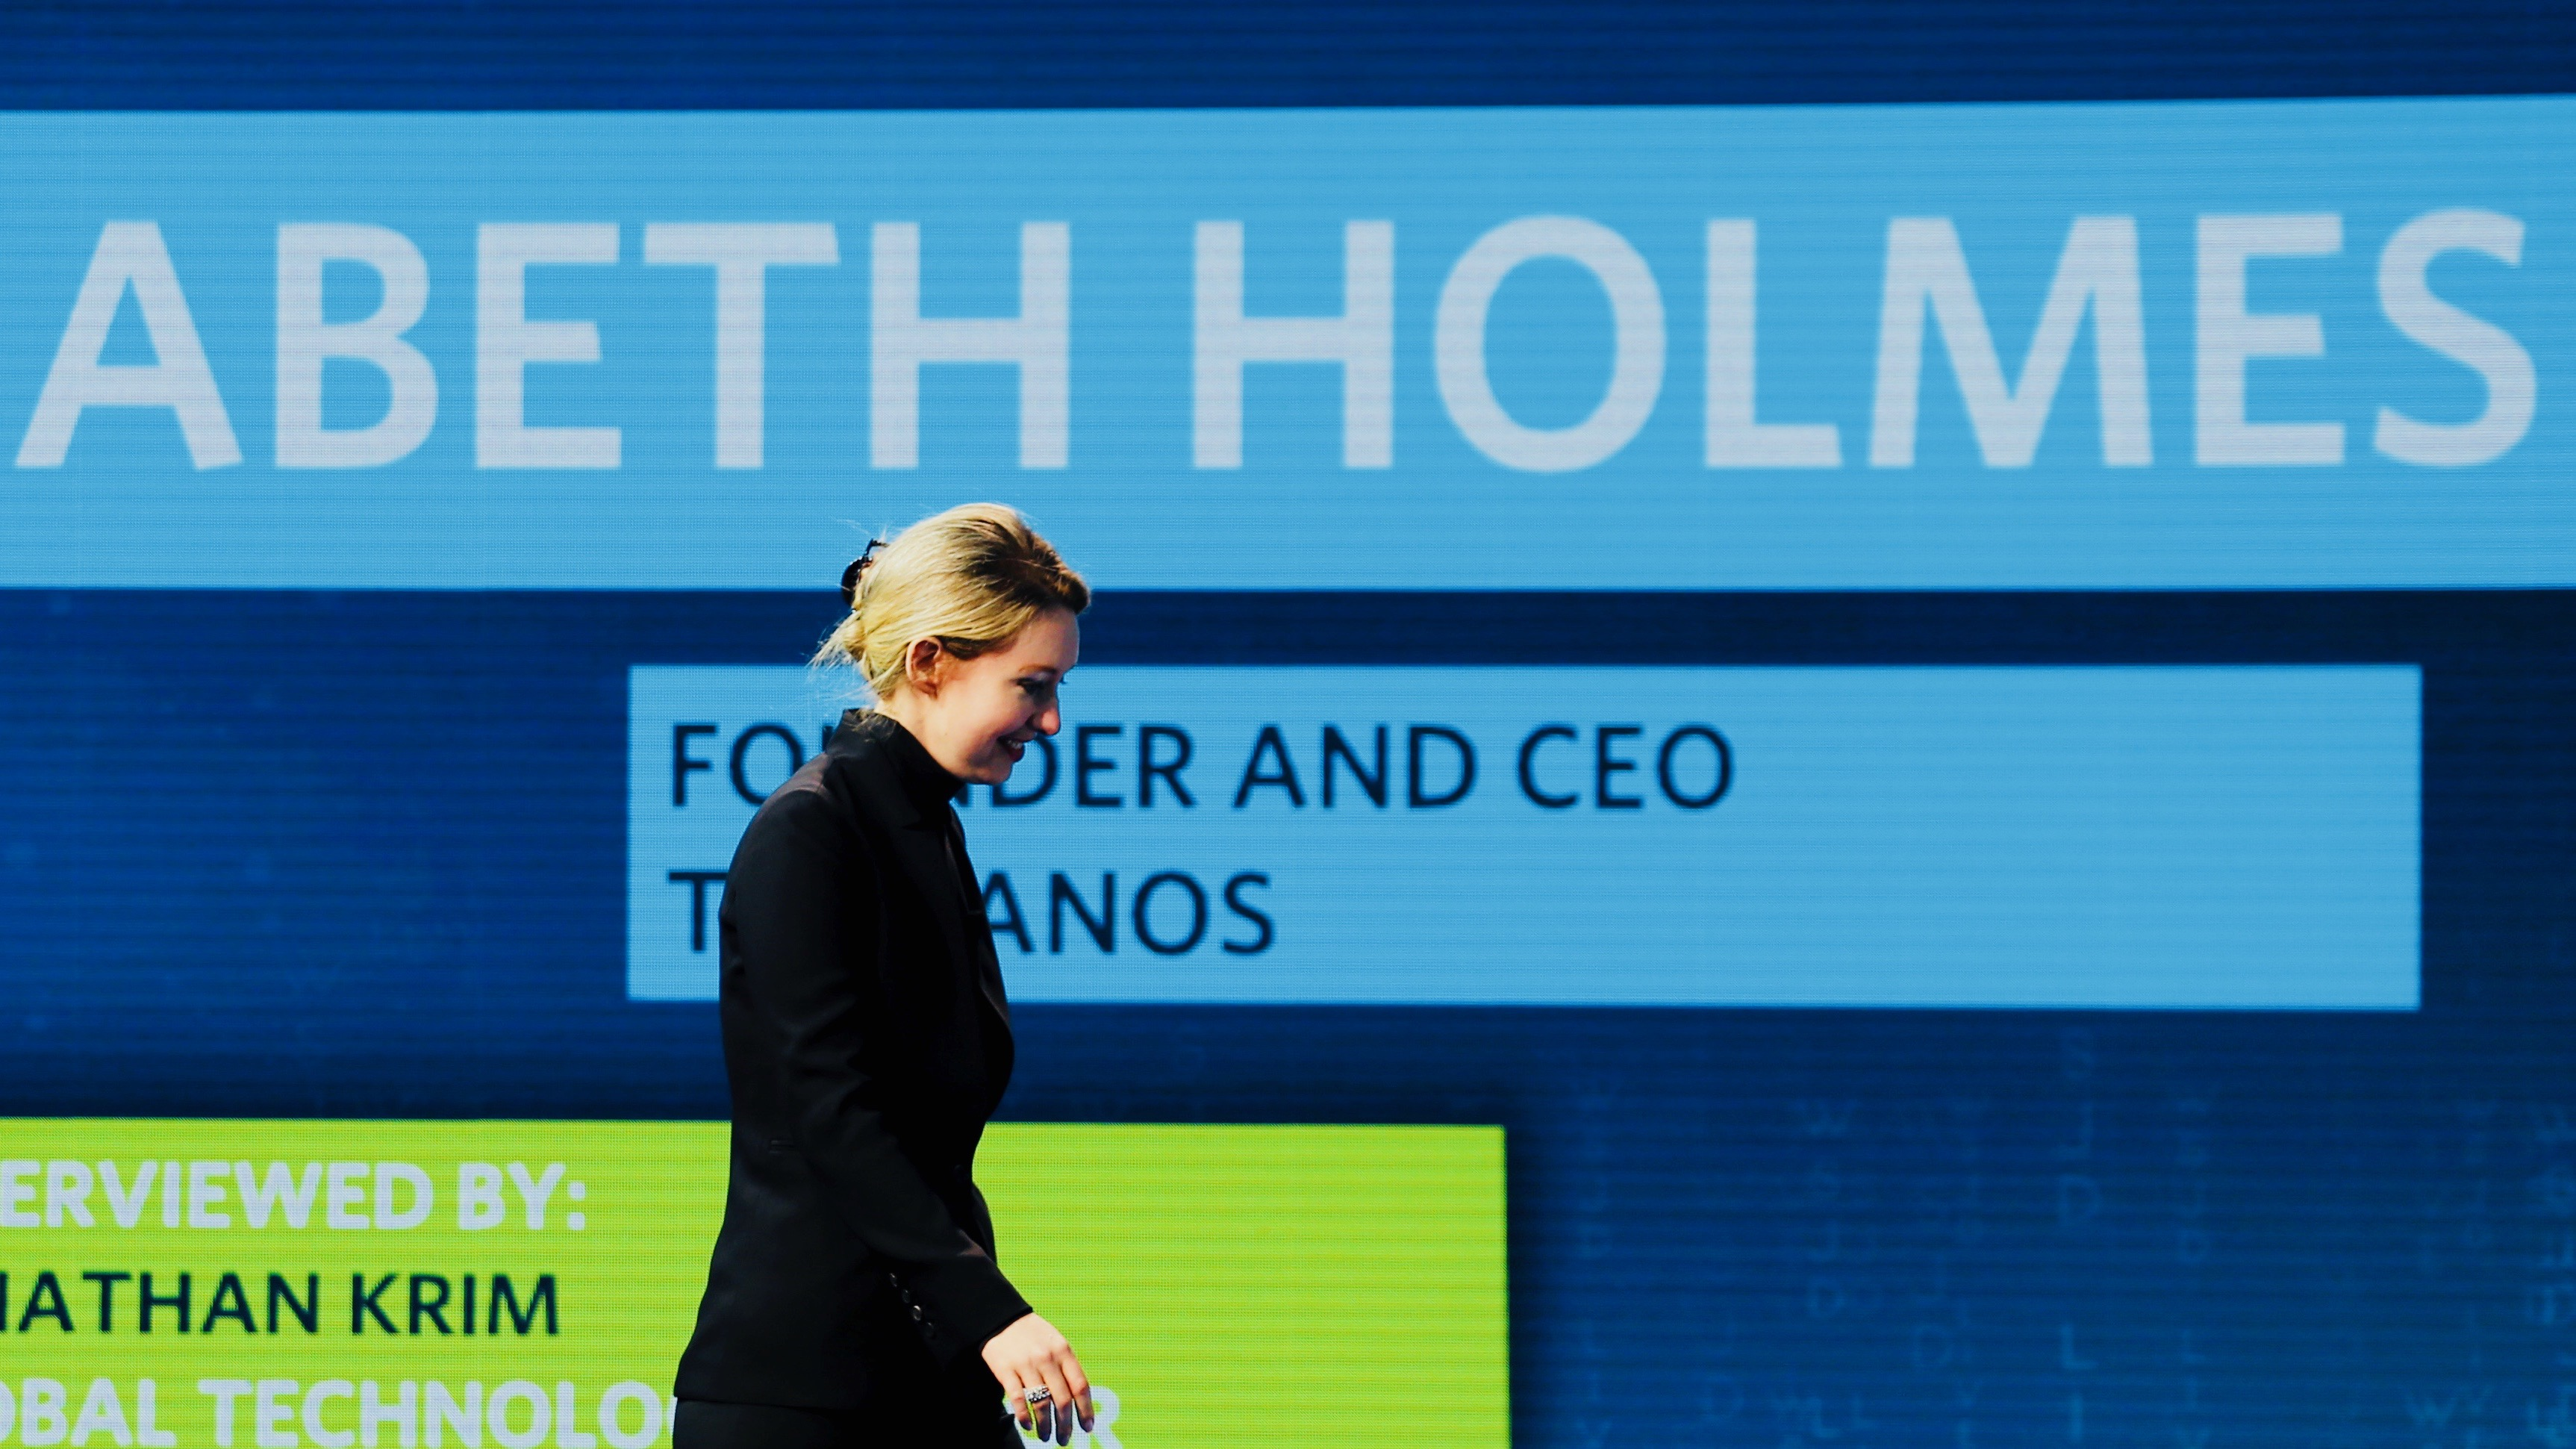 Theranos CEO Elizabeth Holmes Indicted in Alleged Wire Fraud Scheme